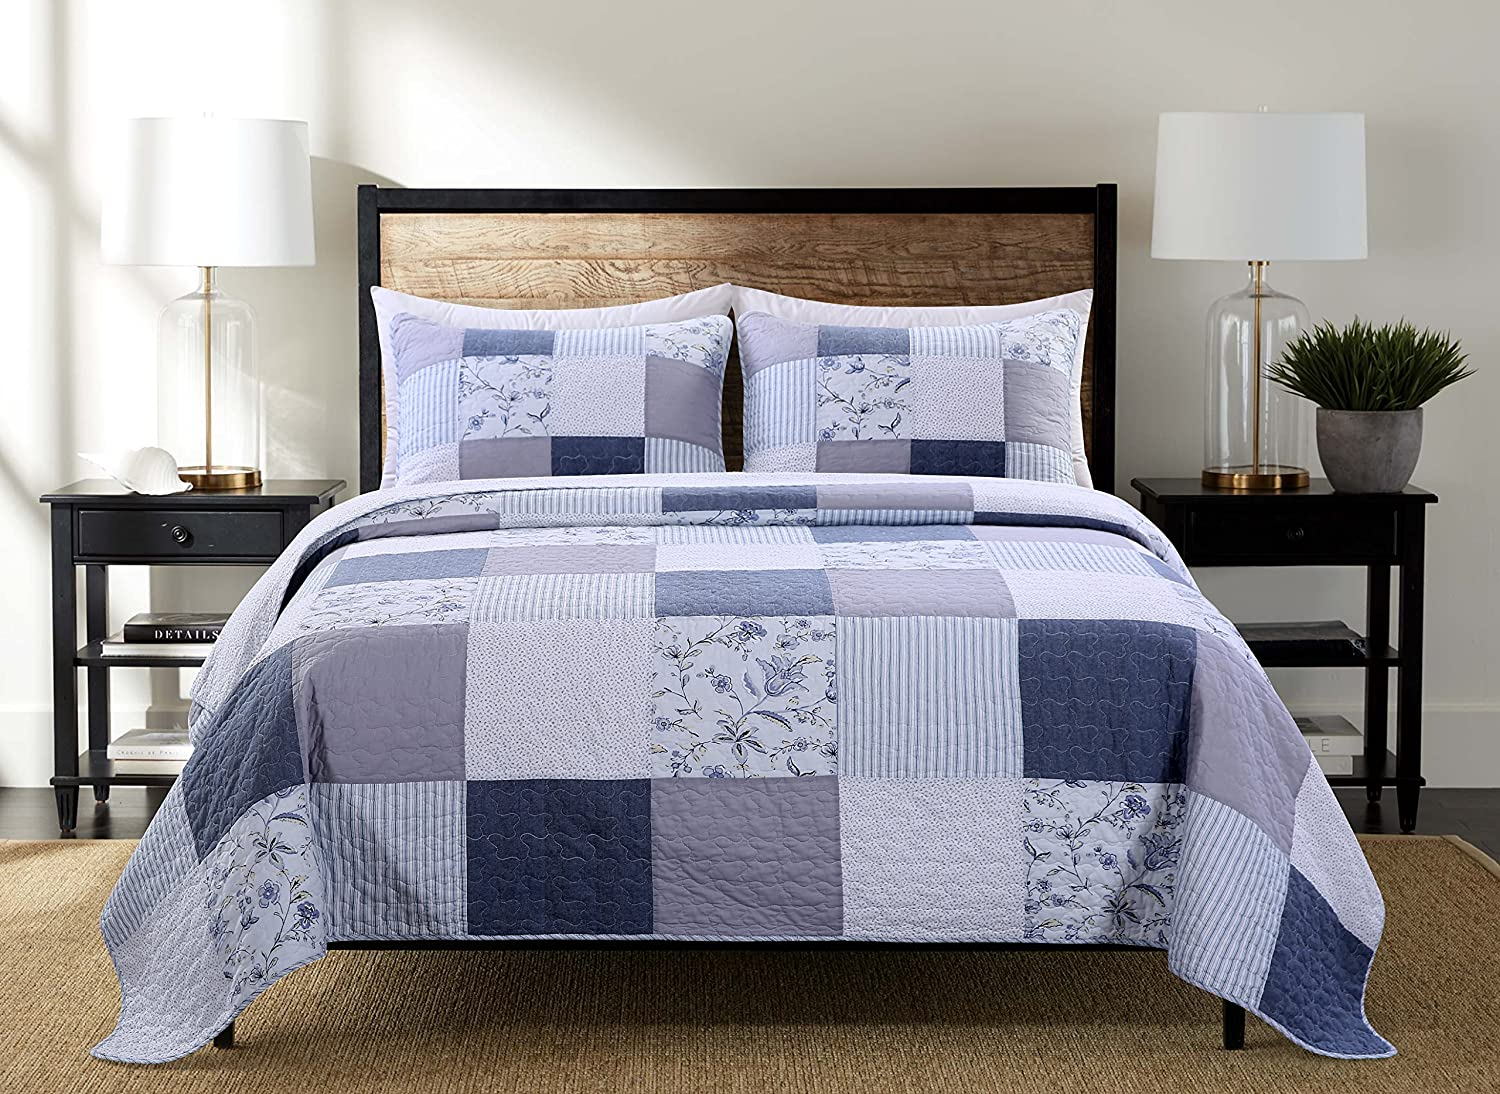 SLPR Coastal Dream 3-Piece Patchwork Cotton Bedding Quilt Set - King with 2 Shams | Purple Country Quilted Bedspread